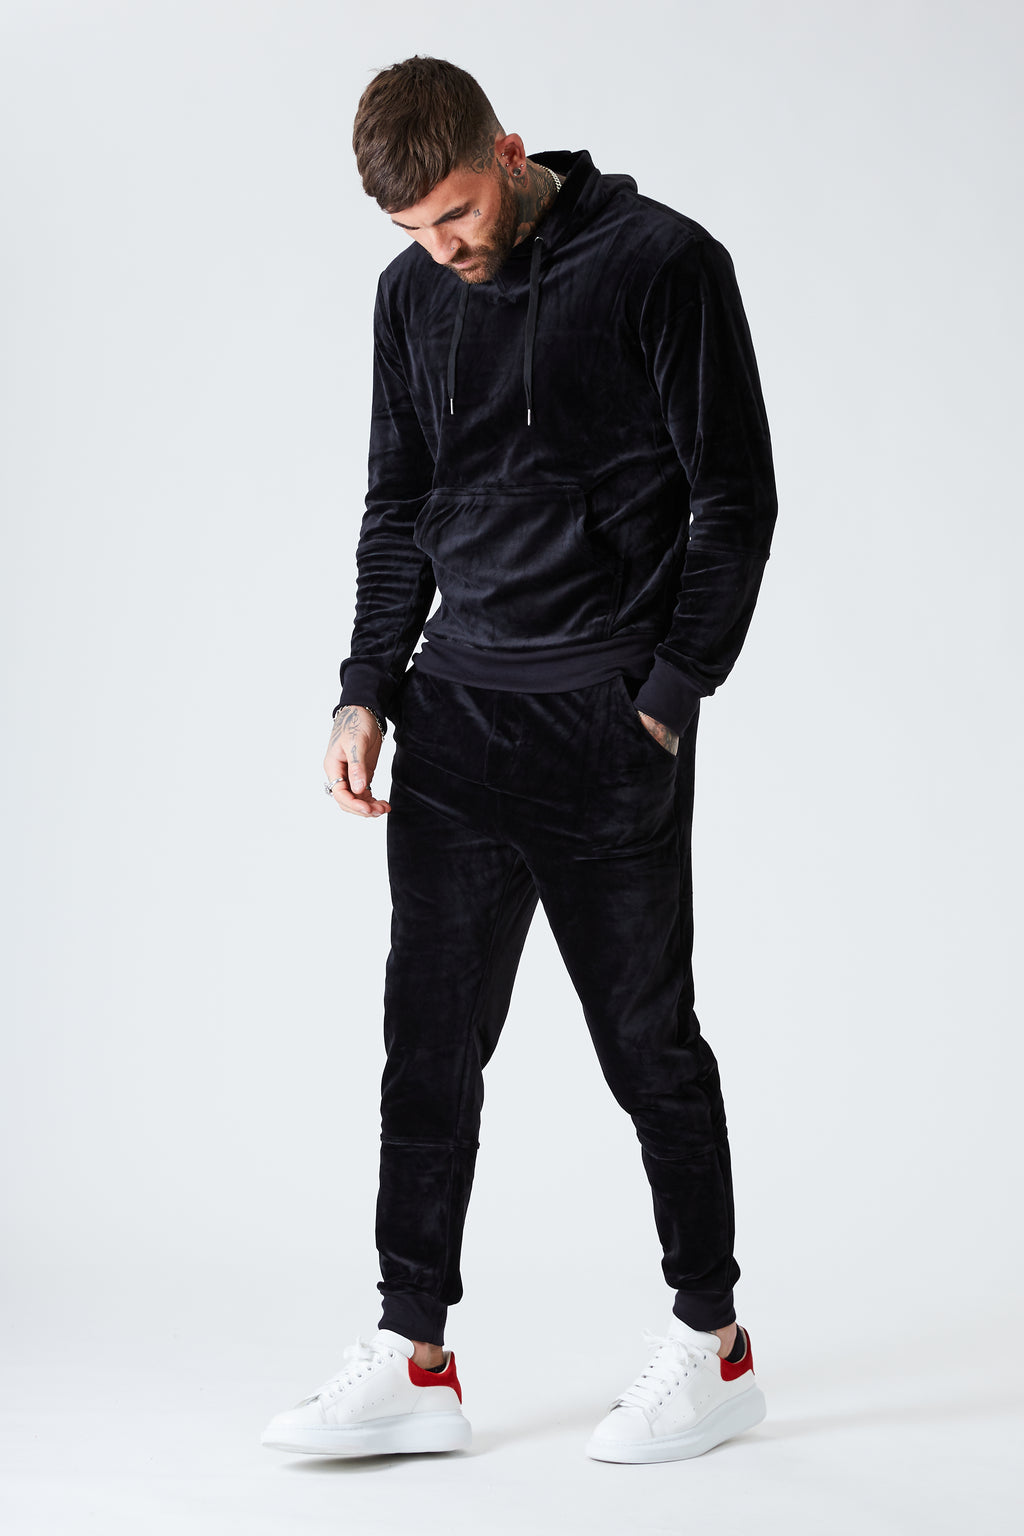 Luxe Velour Track Top - Black - SVPPLY. STUDIOS